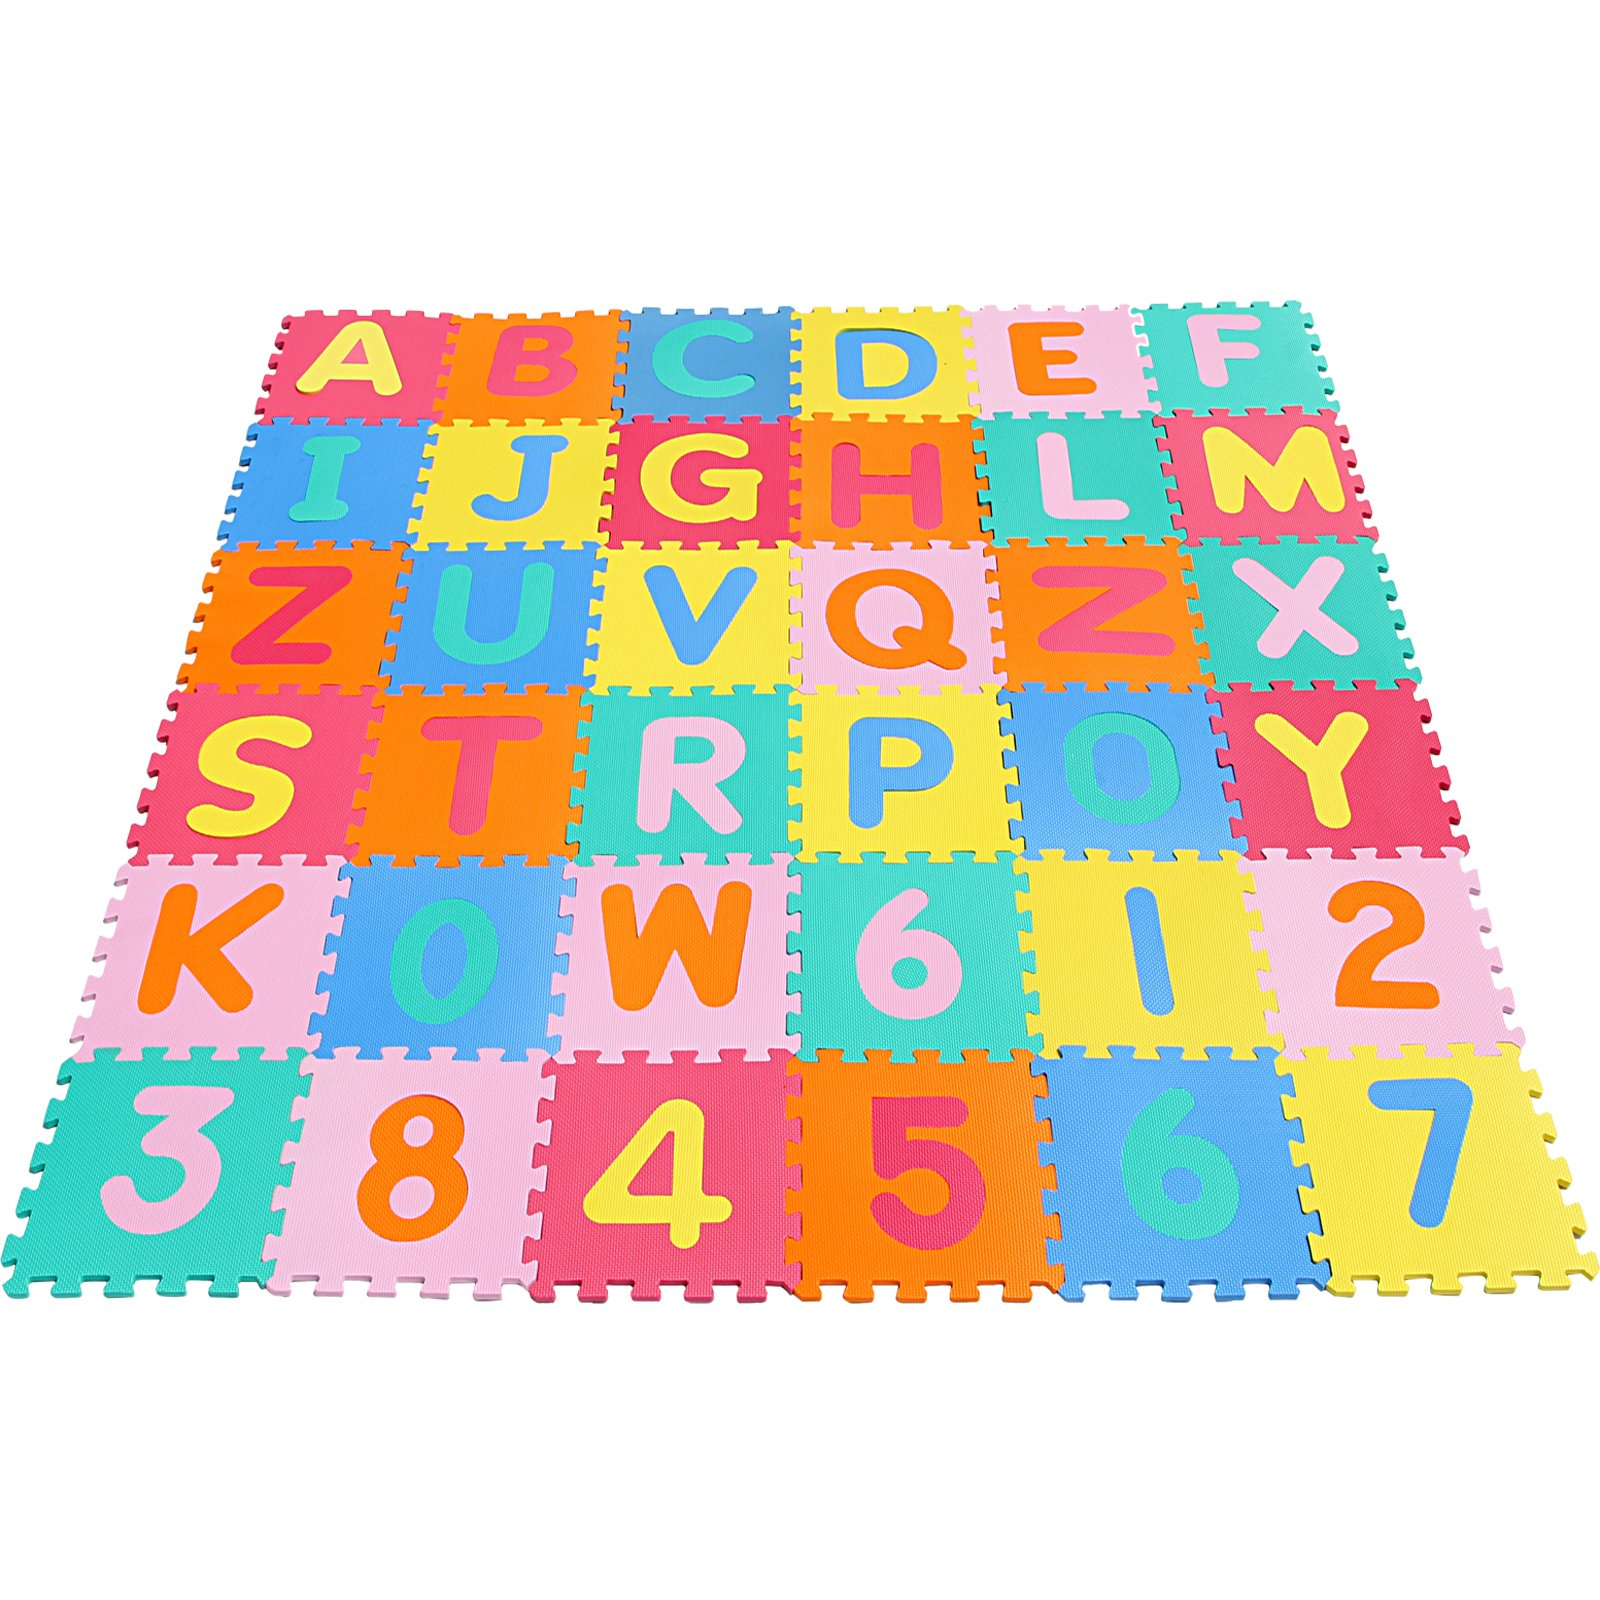 play to floor soft development eva childrens toy promote attention interlocking tomi animal pieces baby puzzle vibrant mats images foam tiles with home sensory capture mat visual shop